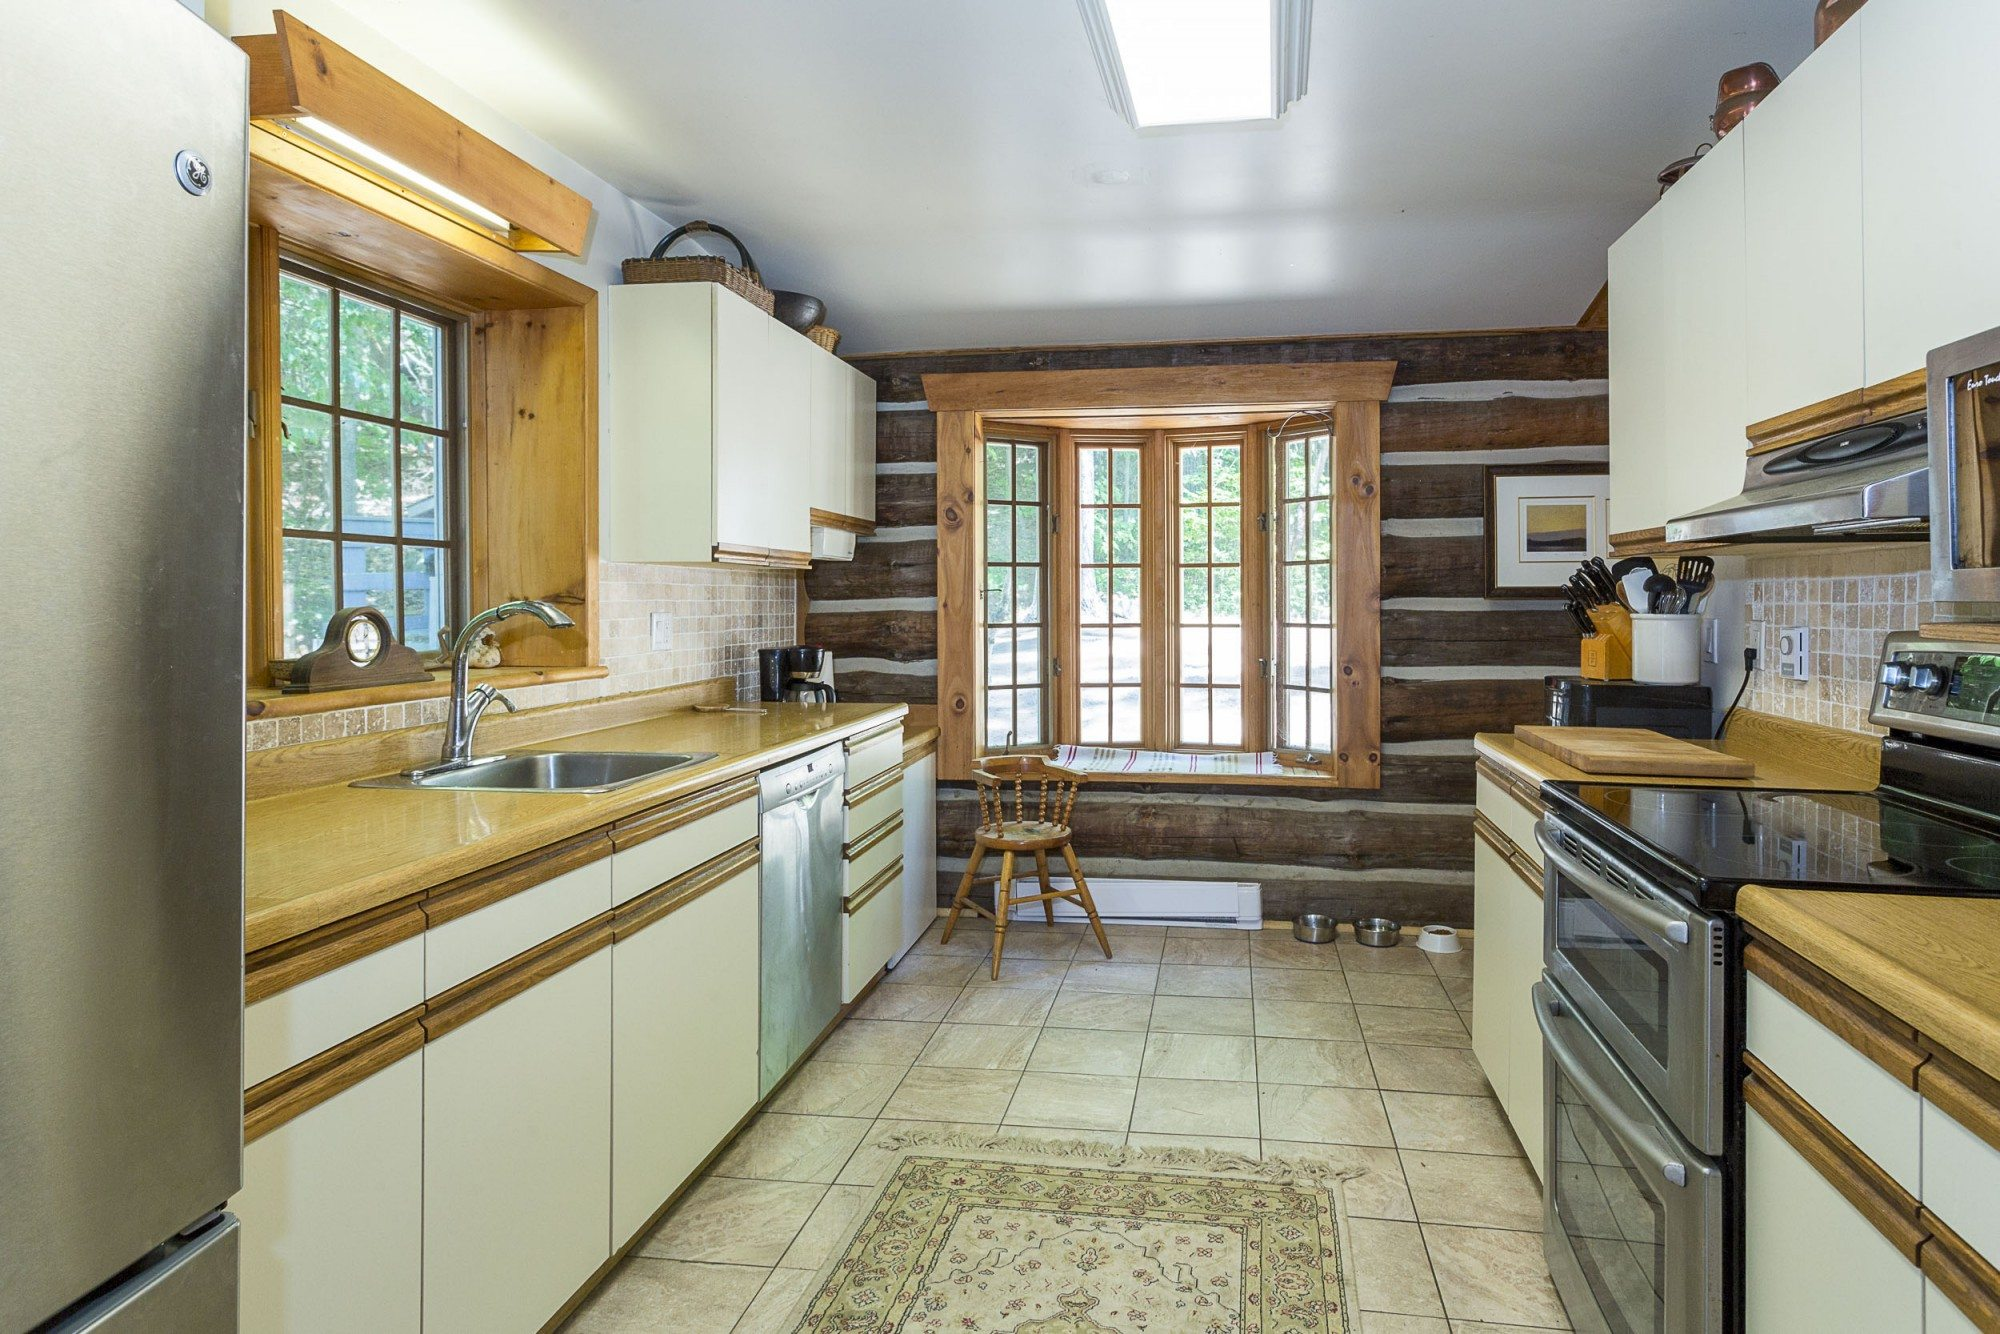 lake-of-bays-cottage-of-the-week-1057-montgomery-bay-road.4